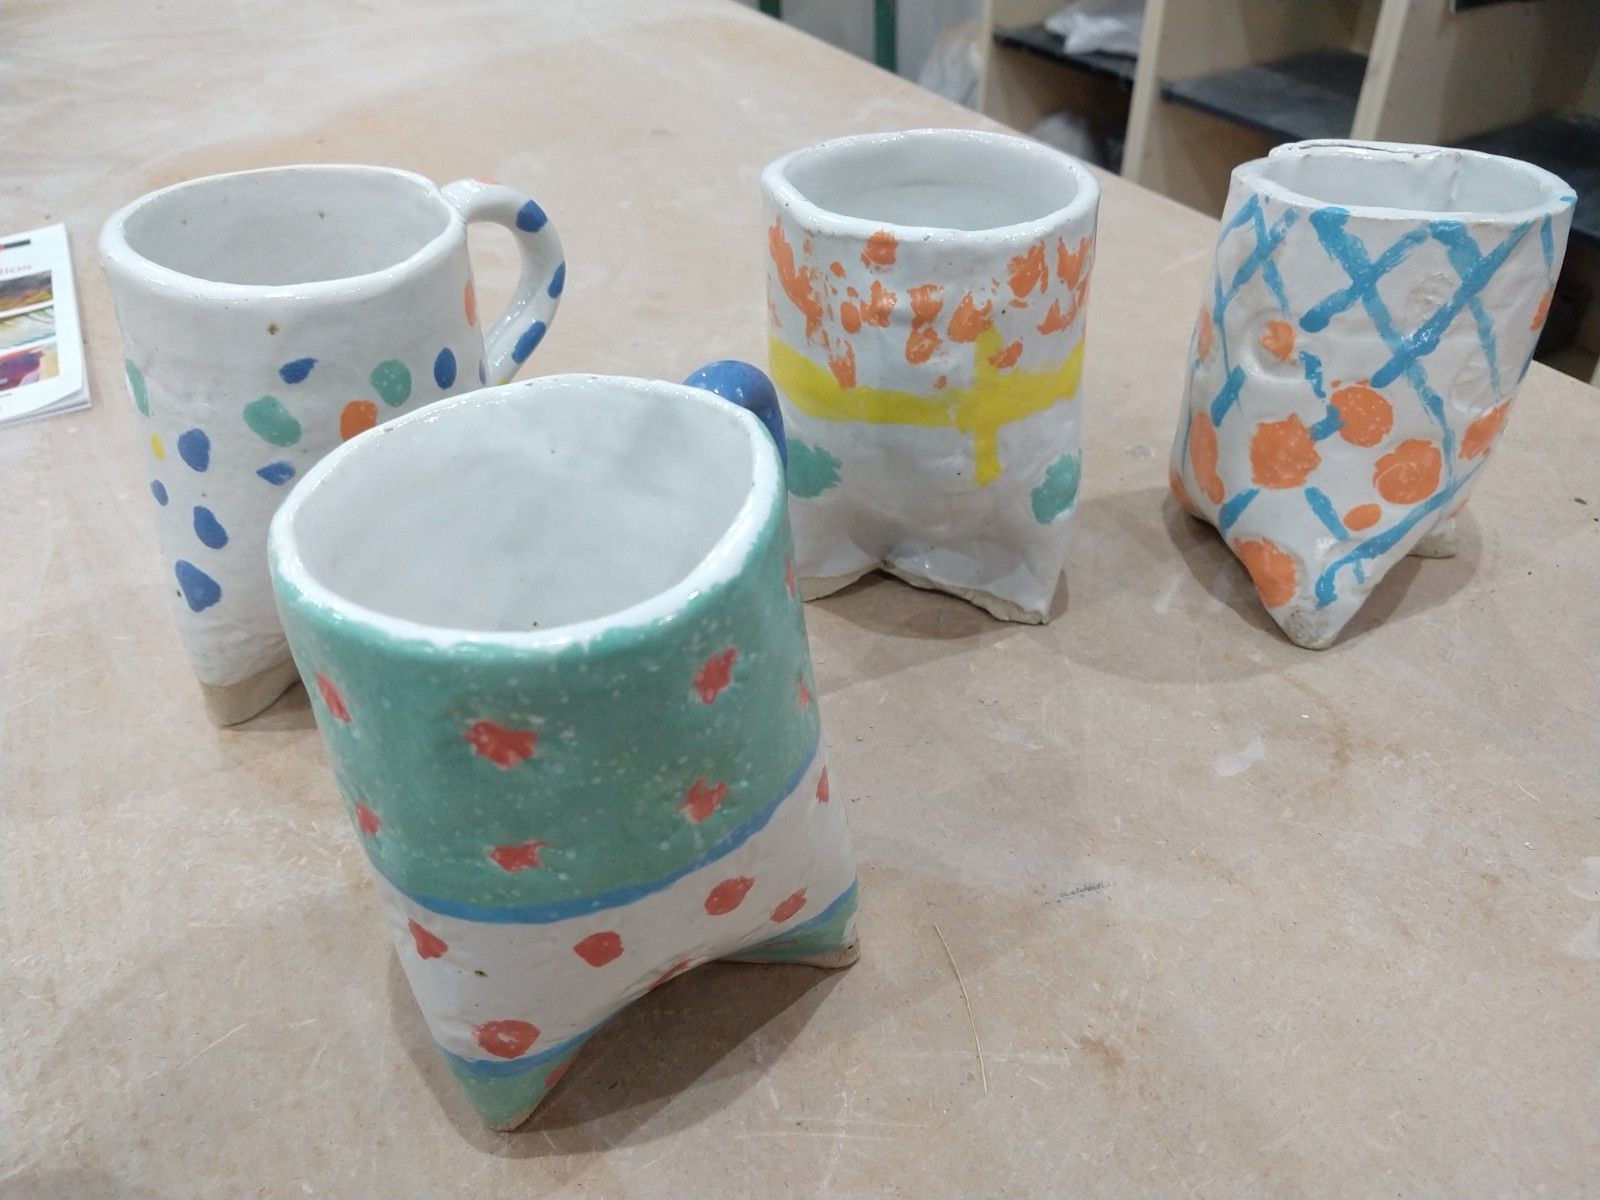 Three legged mugs made with our autistic